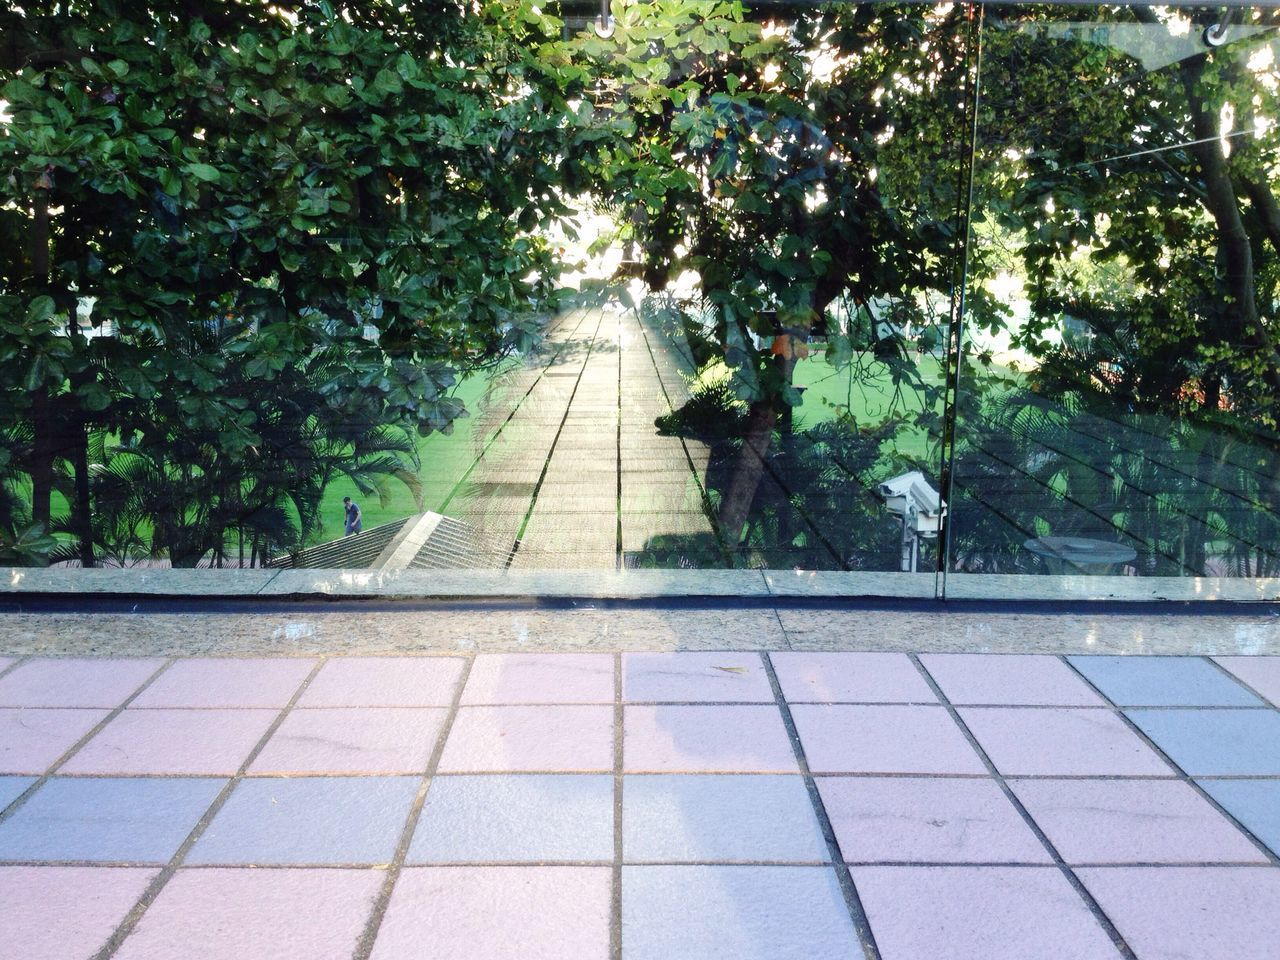 tree, nature, growth, plant, no people, walkway, outdoors, day